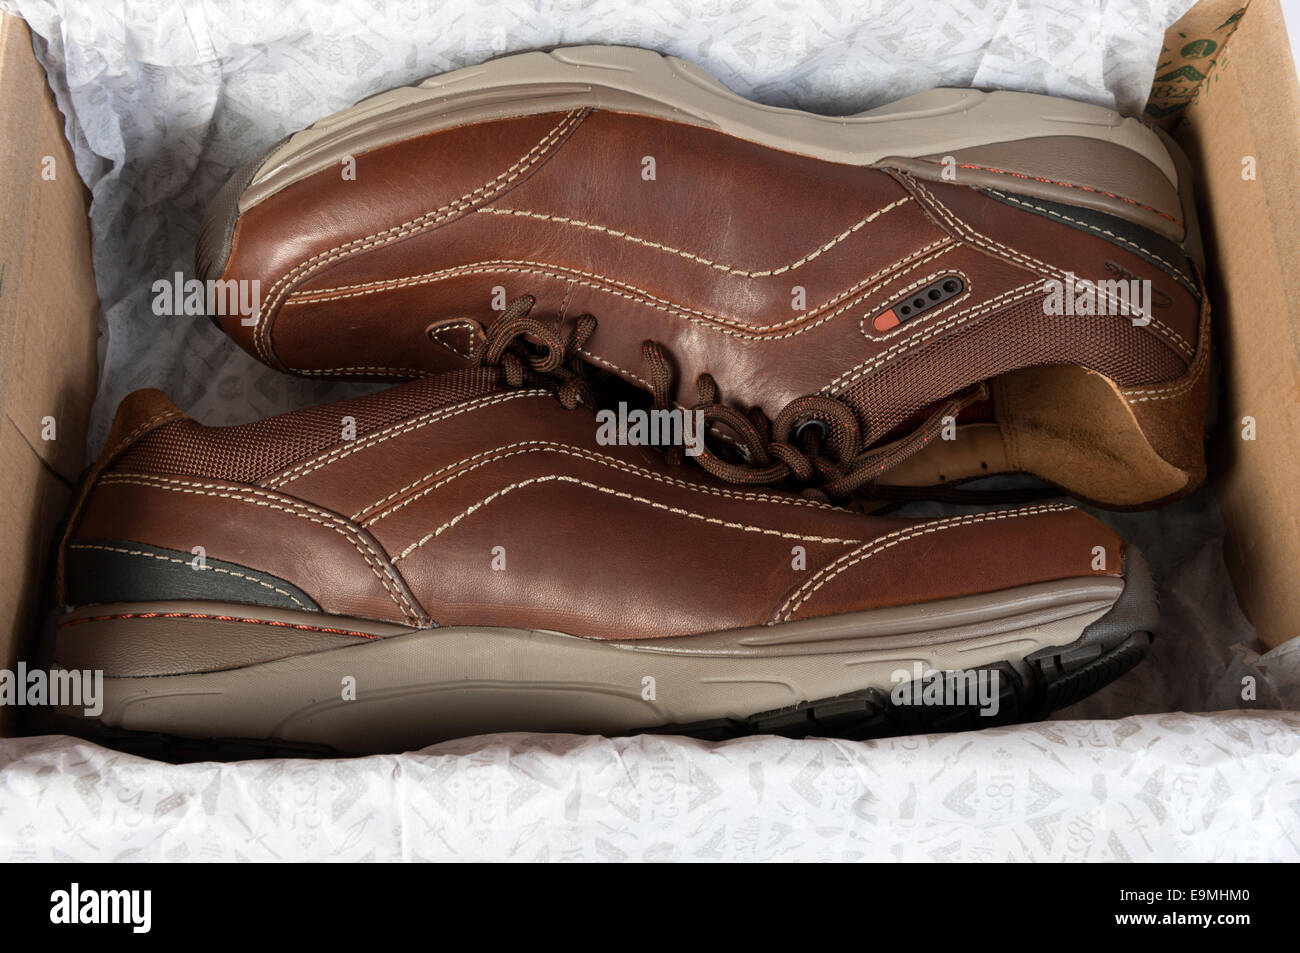 cf3a6af978 Mens Clarks Active Air shoes Stock Photo: 74826304 - Alamy